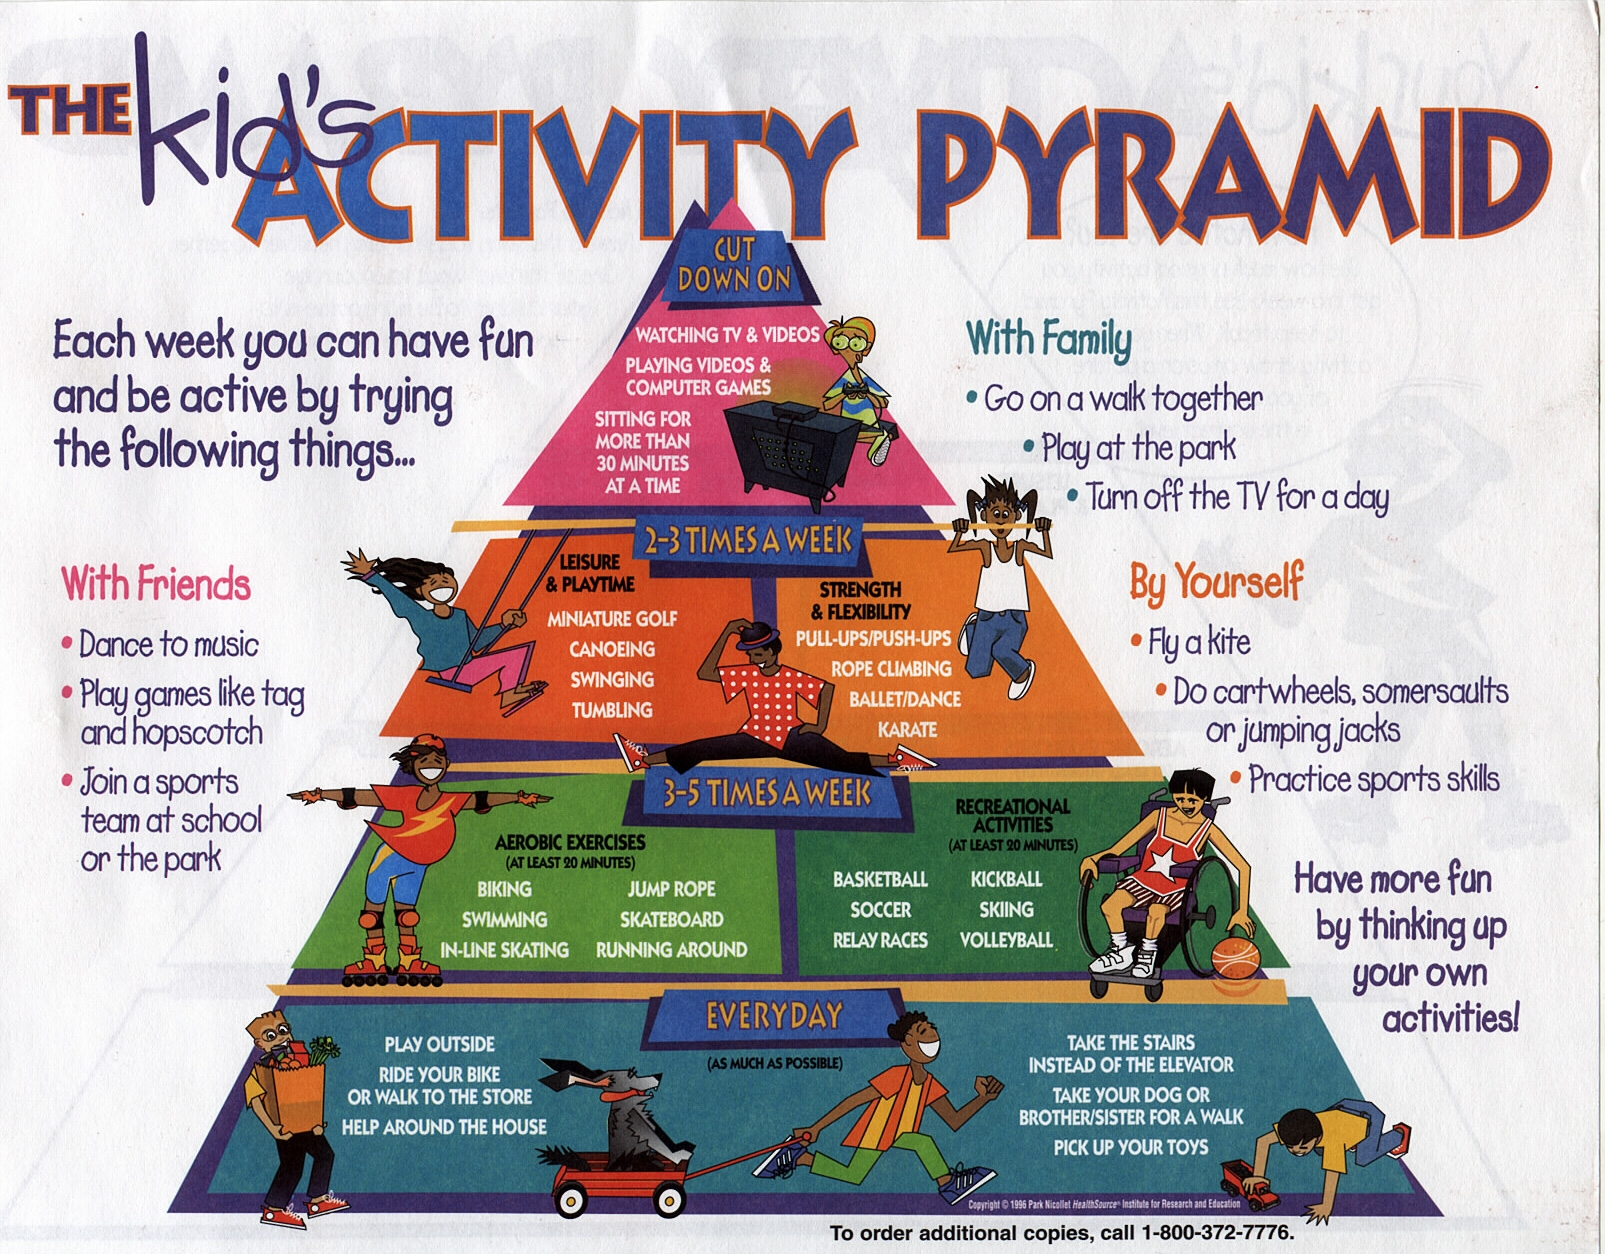 the importance of physical activities at school For children and young people, physical activity includes play, games, sports, transportation, chores, recreation, physical education, or planned exercise, in the context of family, school.